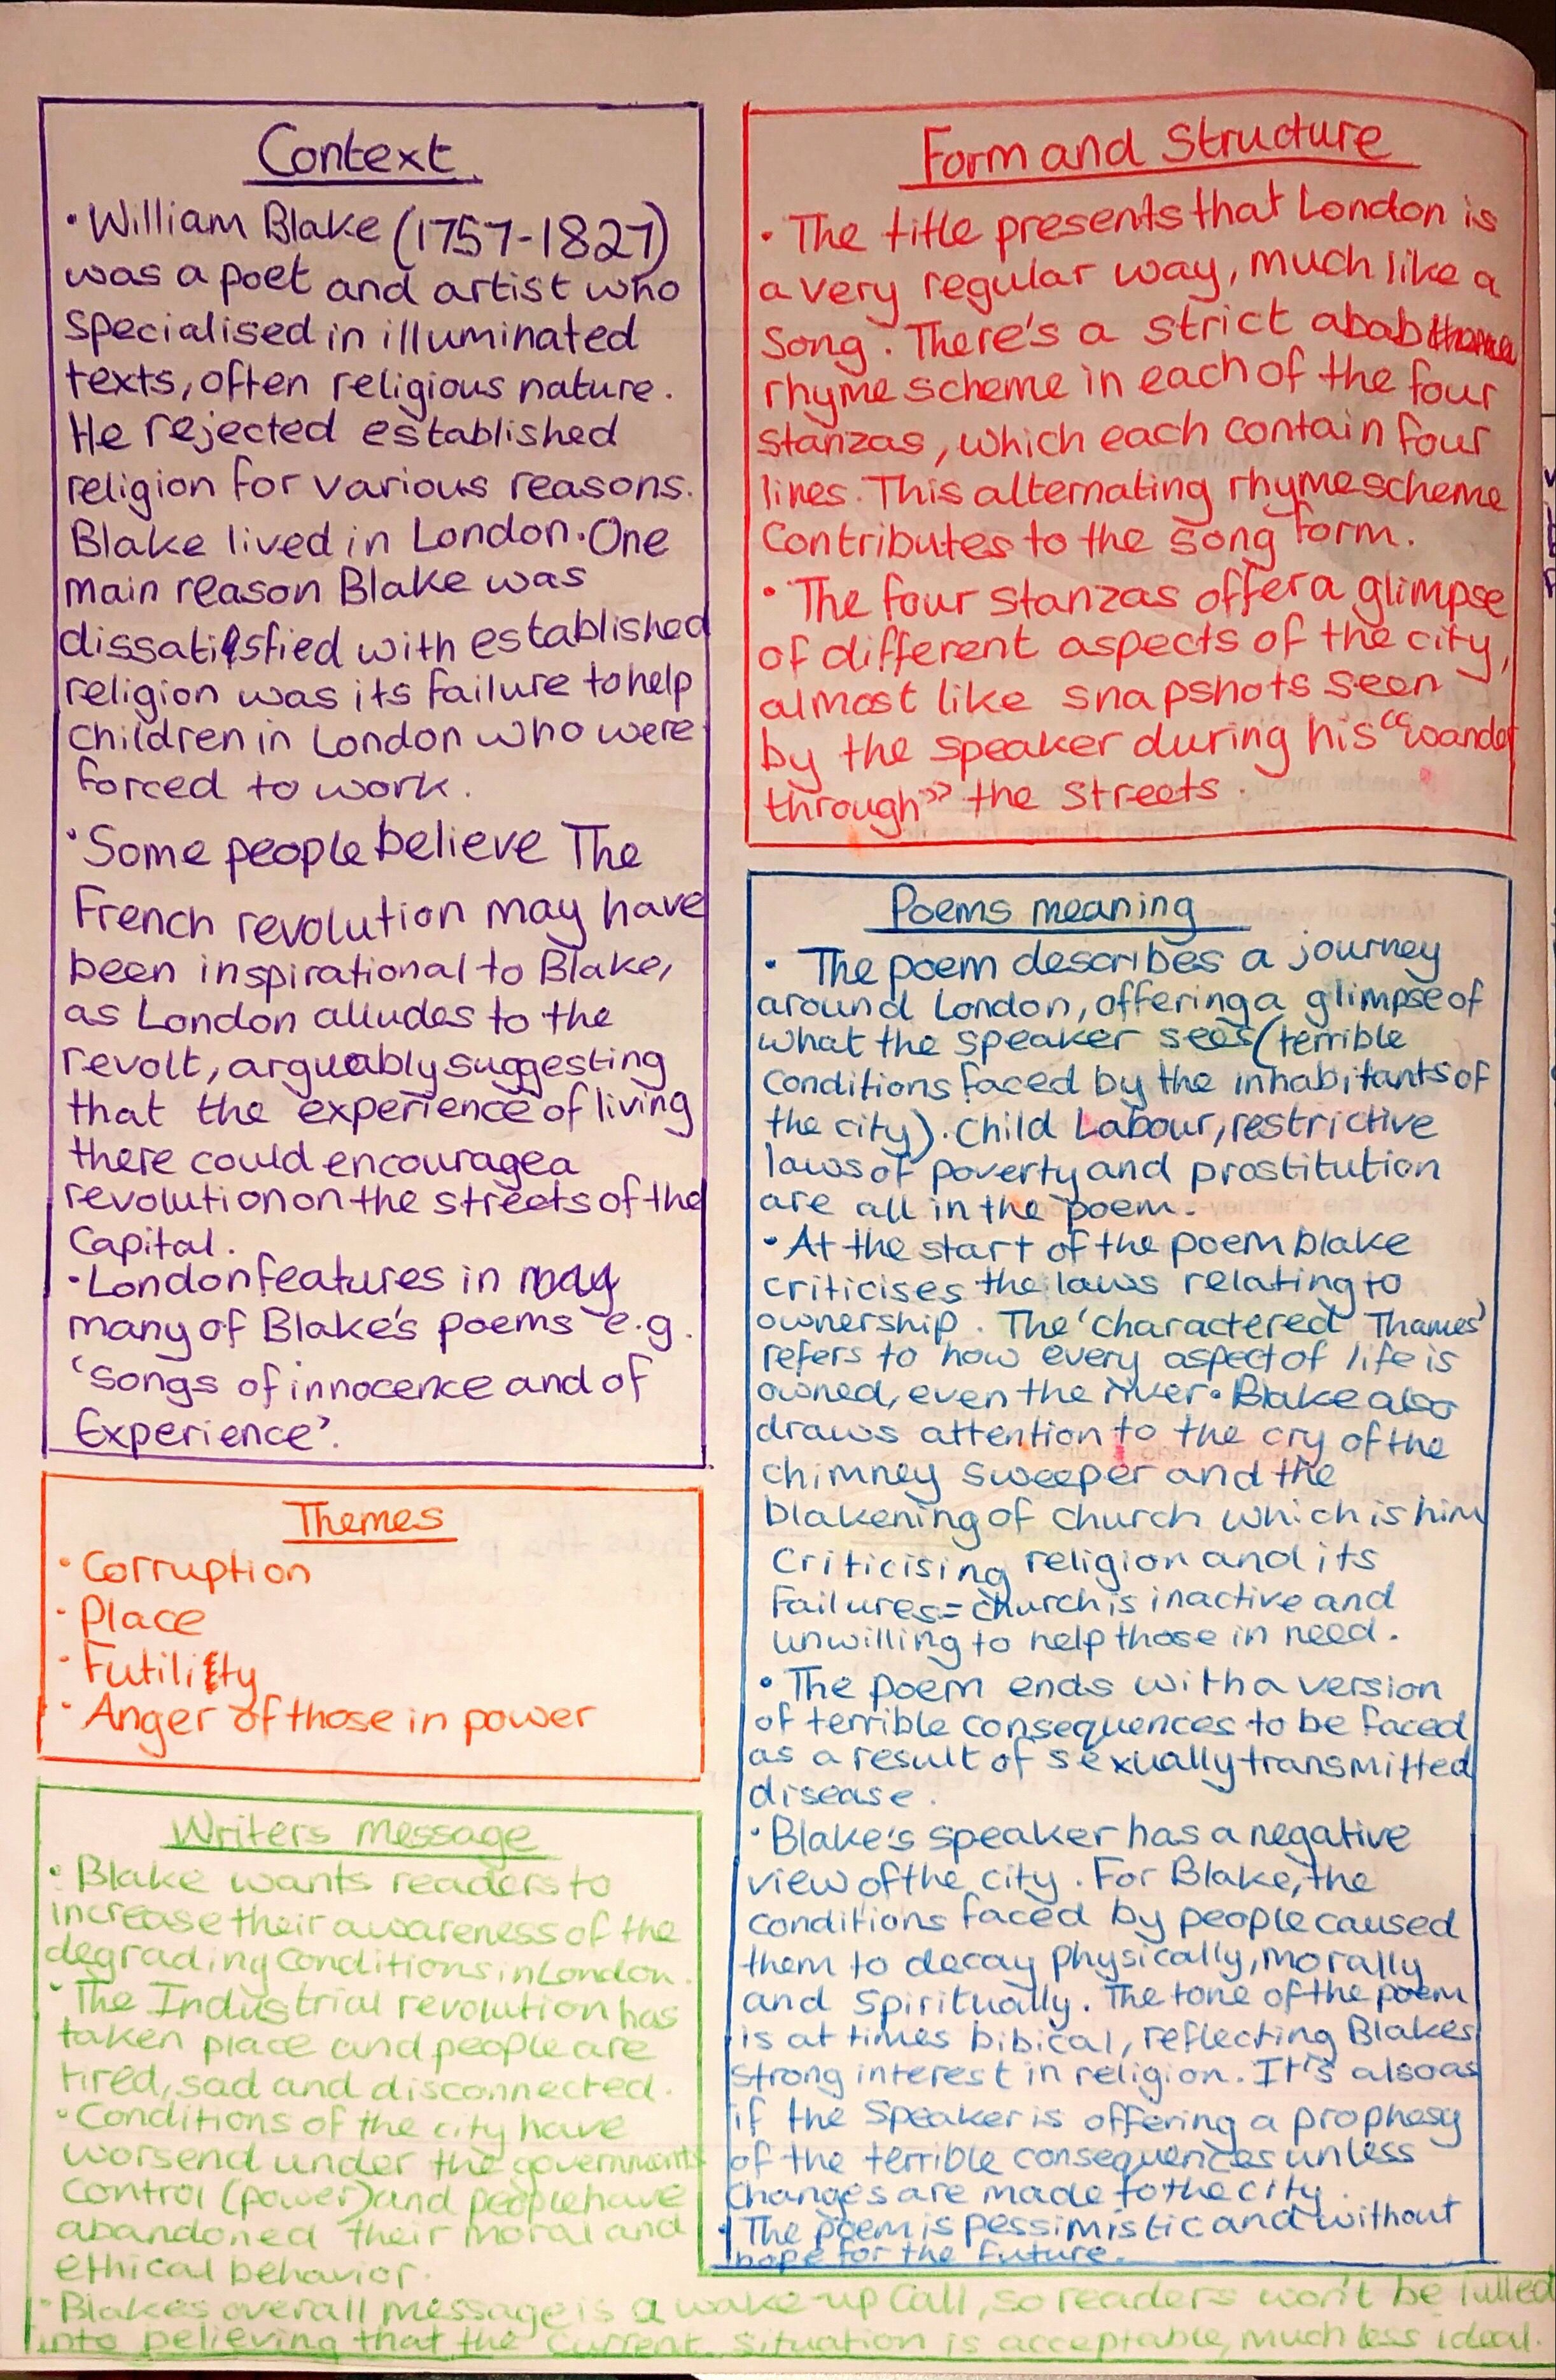 London Revision Page Context Theme Writer Message Form And Structure Poem Meaning Gcse English Literature Poems My Last Duches Line By Analysis